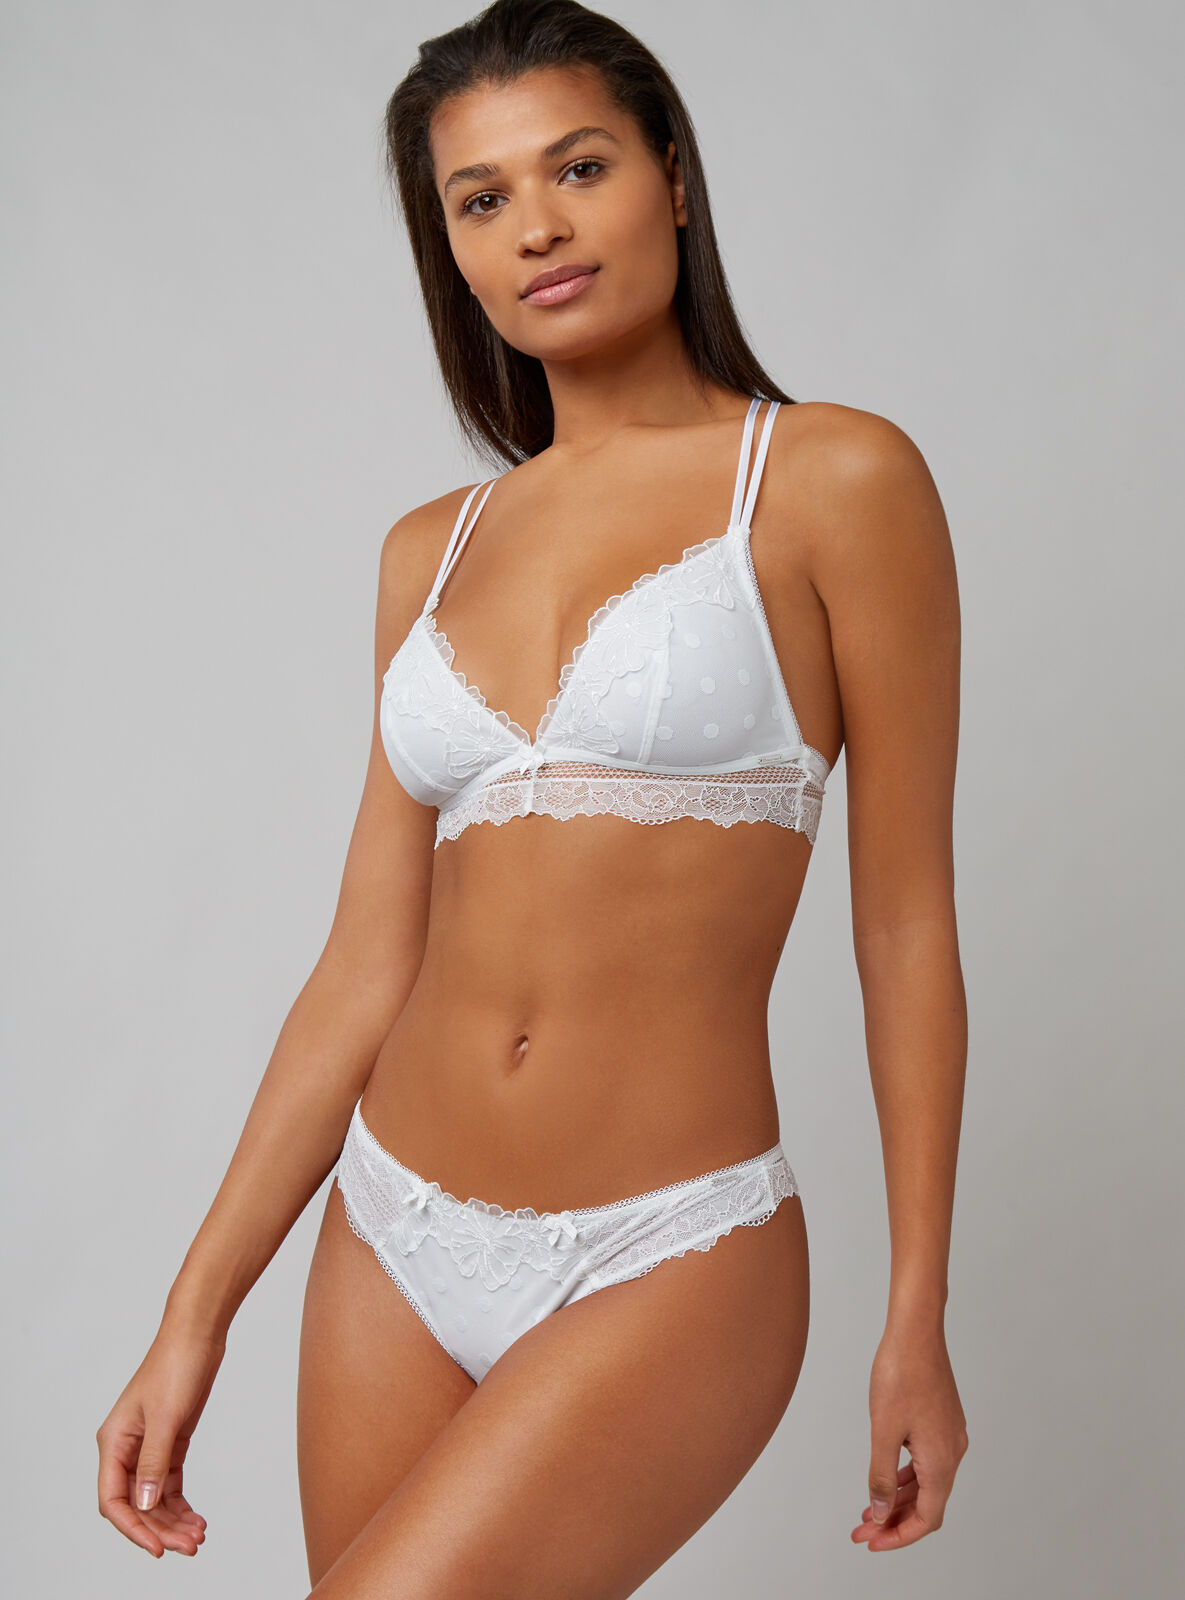 The Best Lingerie And Underwear Sets For Women